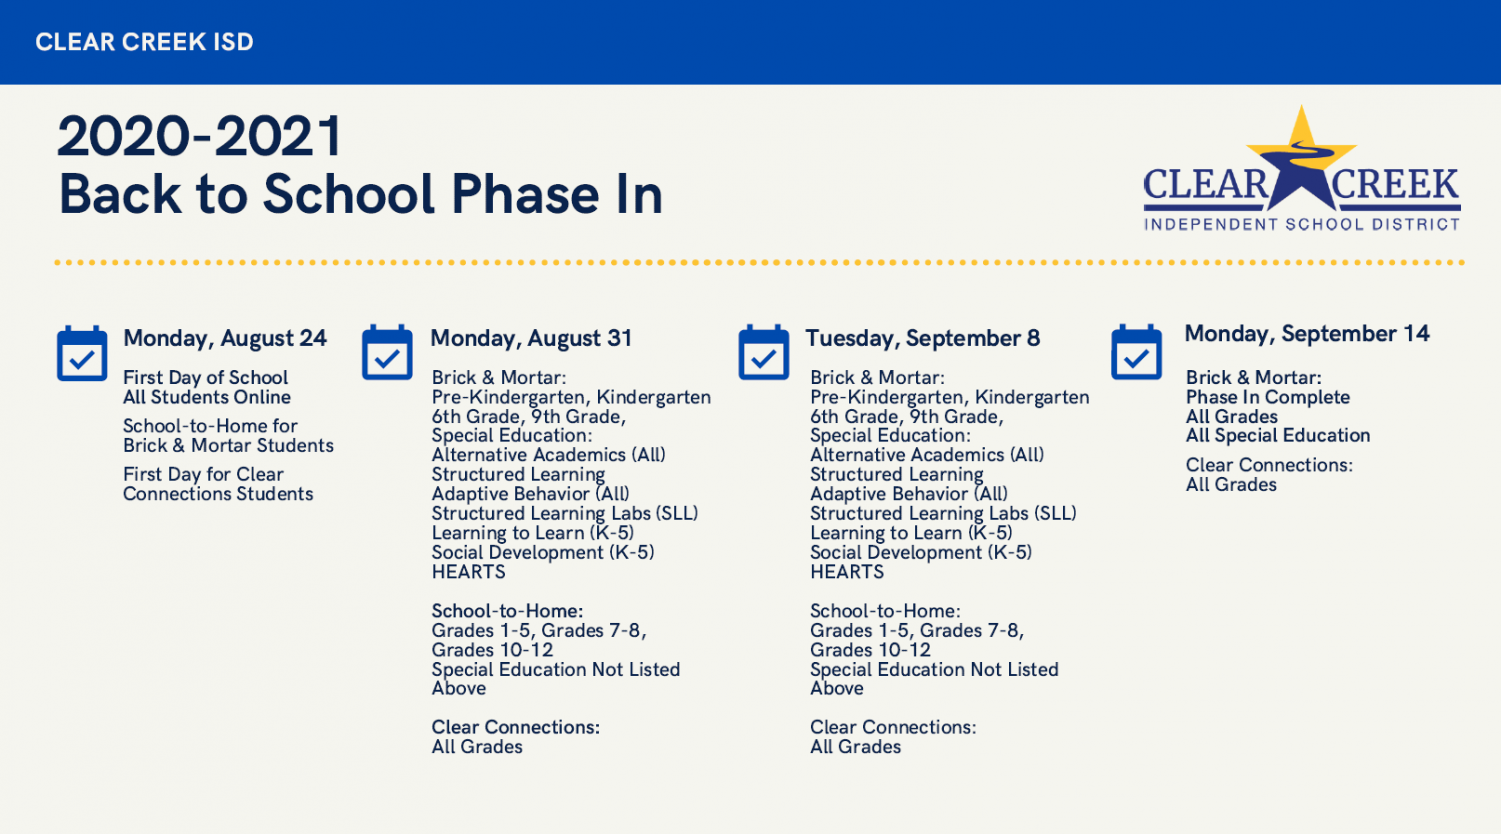 UPDATE:School start dates for online and in school